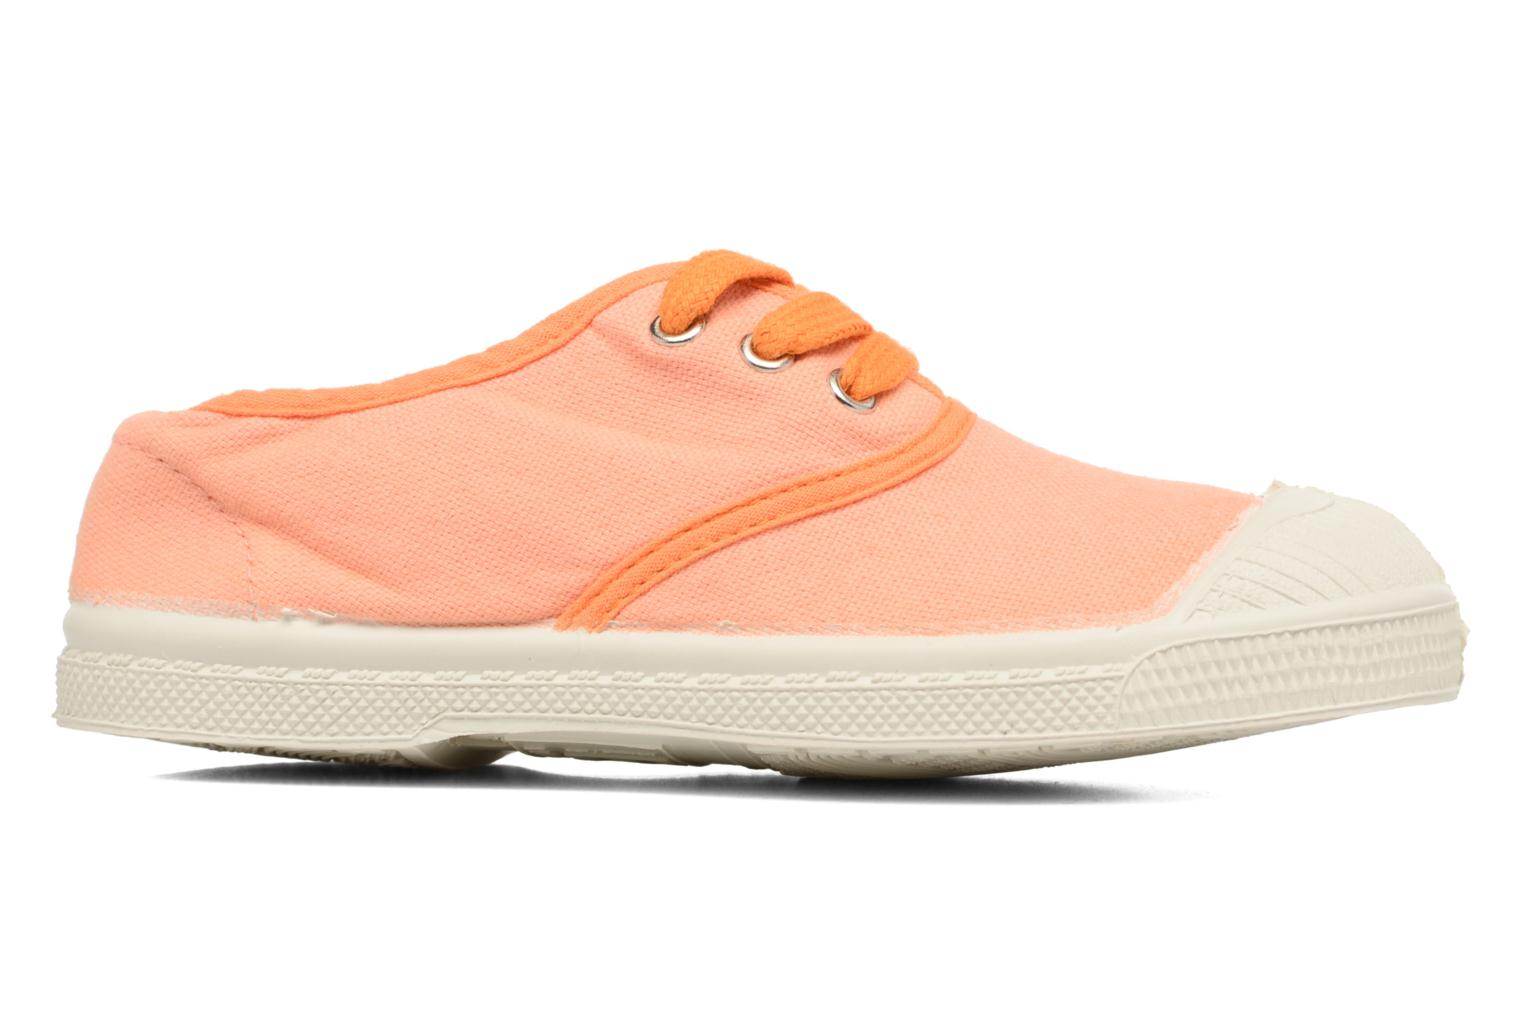 Baskets Bensimon Tennis Colorpiping E Orange vue derrière